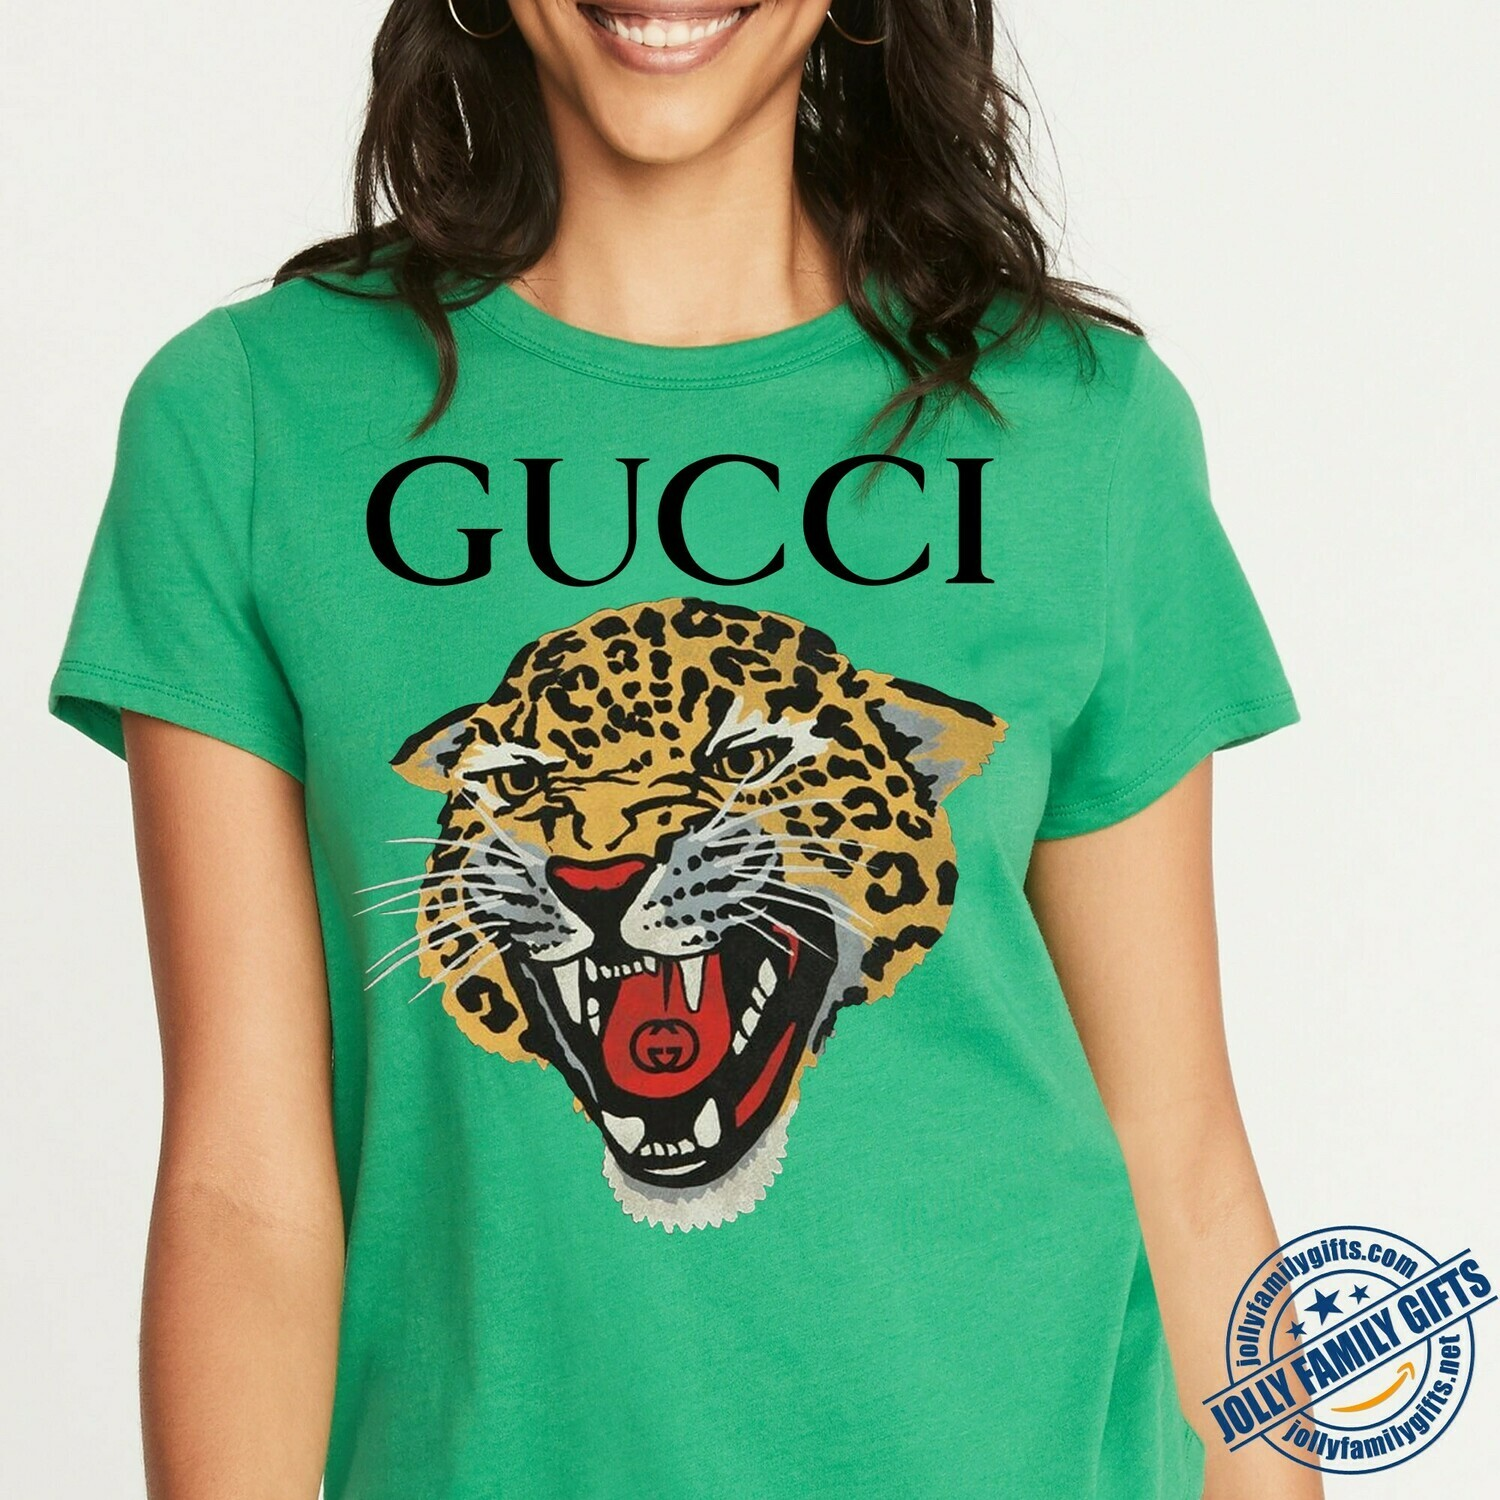 Gucci Tiger Gang Kawaii Champion,Supreme Tiger,Gucci Magnetismo Animale,Gucci Jaguar Gucci Polo s Unisex T-Shirt Hoodie Sweatshirt Sweater for Ladies Women Men Kids Youth Gifts Tee Jolly Family Gifts